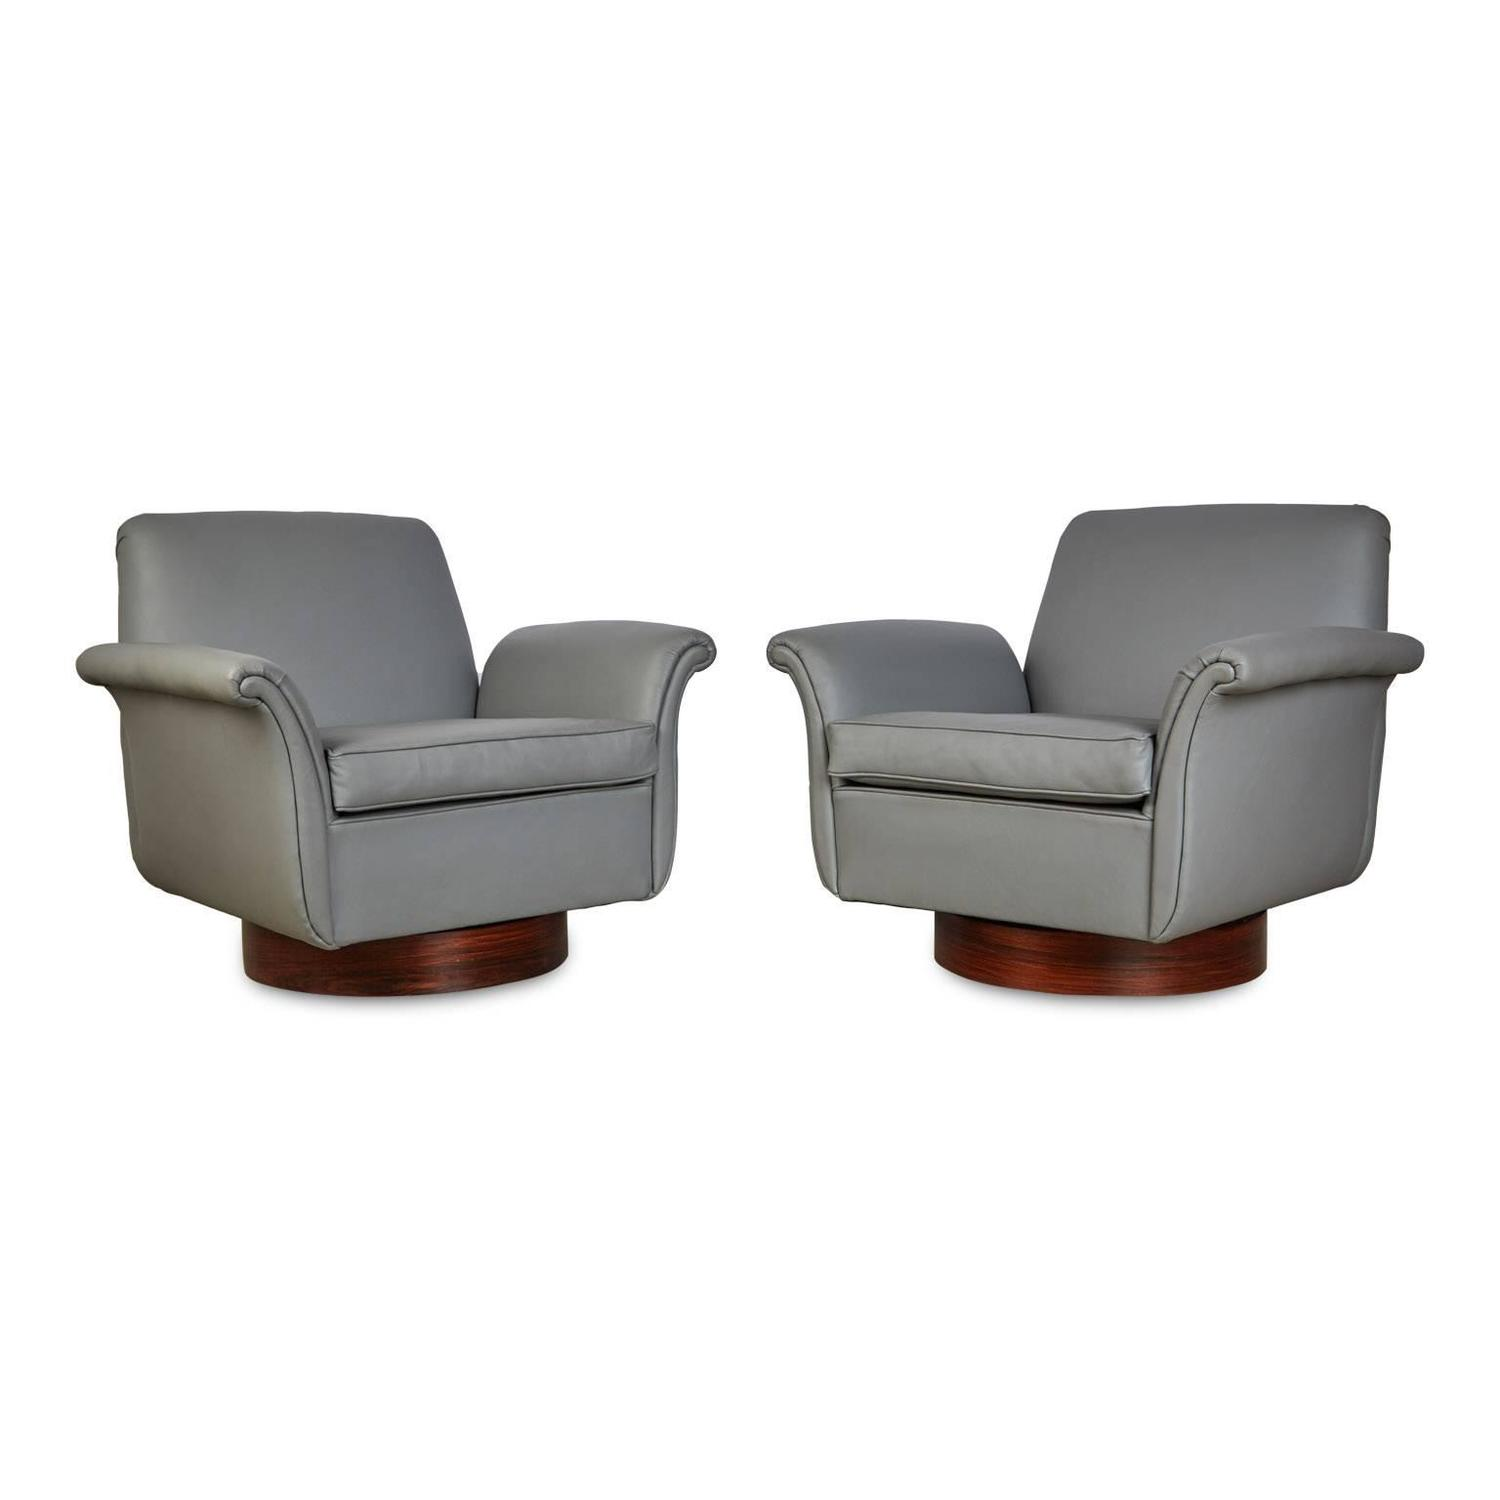 grey modern armchairs eames chair accessories pair of brazilian leather and rosewood swivel